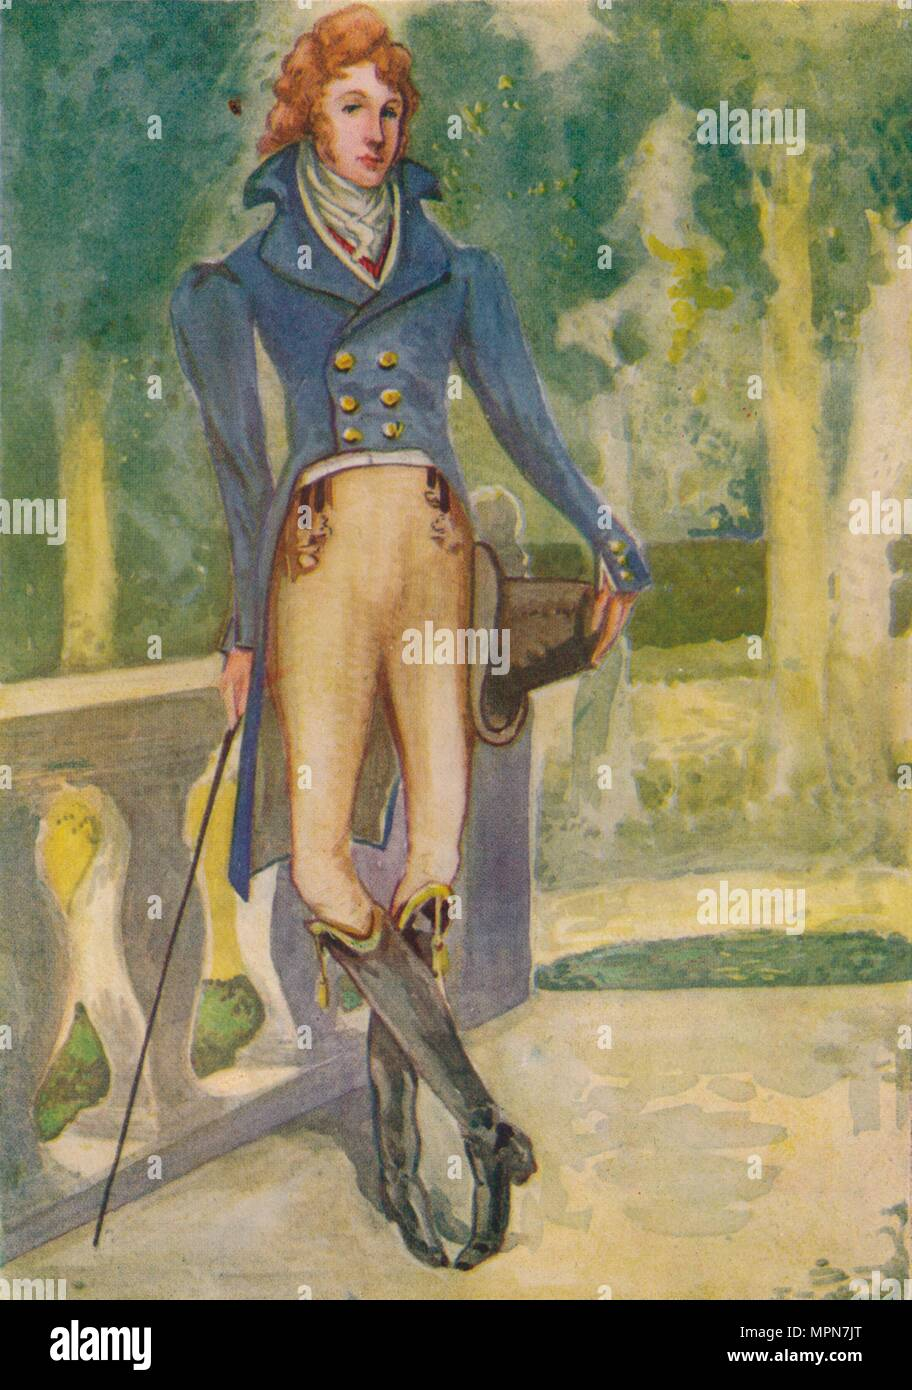 'A Man of the Time of George IV', 1907. Artist: Dion Clayton Calthrop. - Stock Image